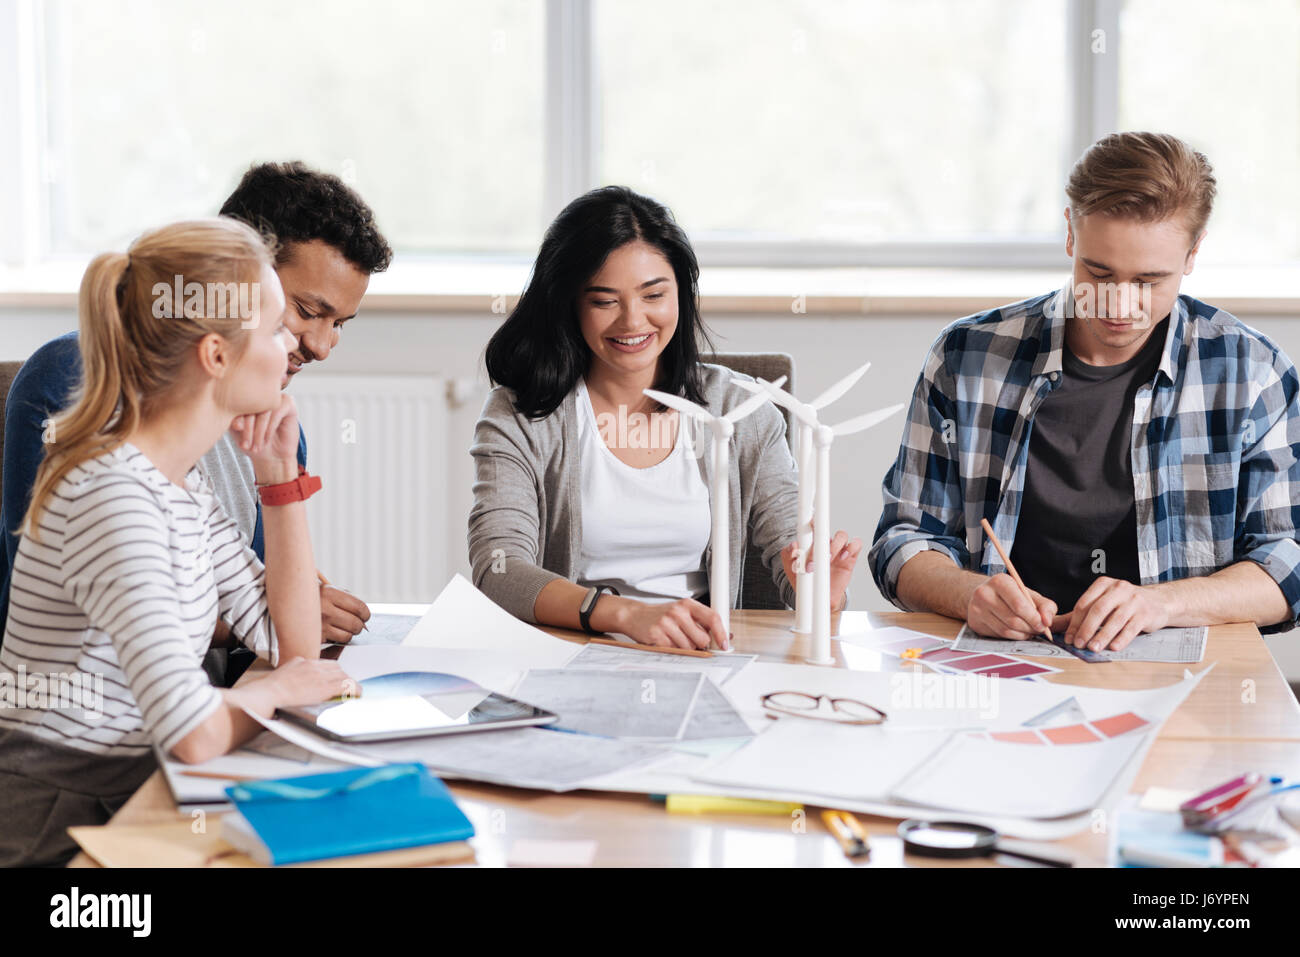 Joyful positive team of engineers working together - Stock Image